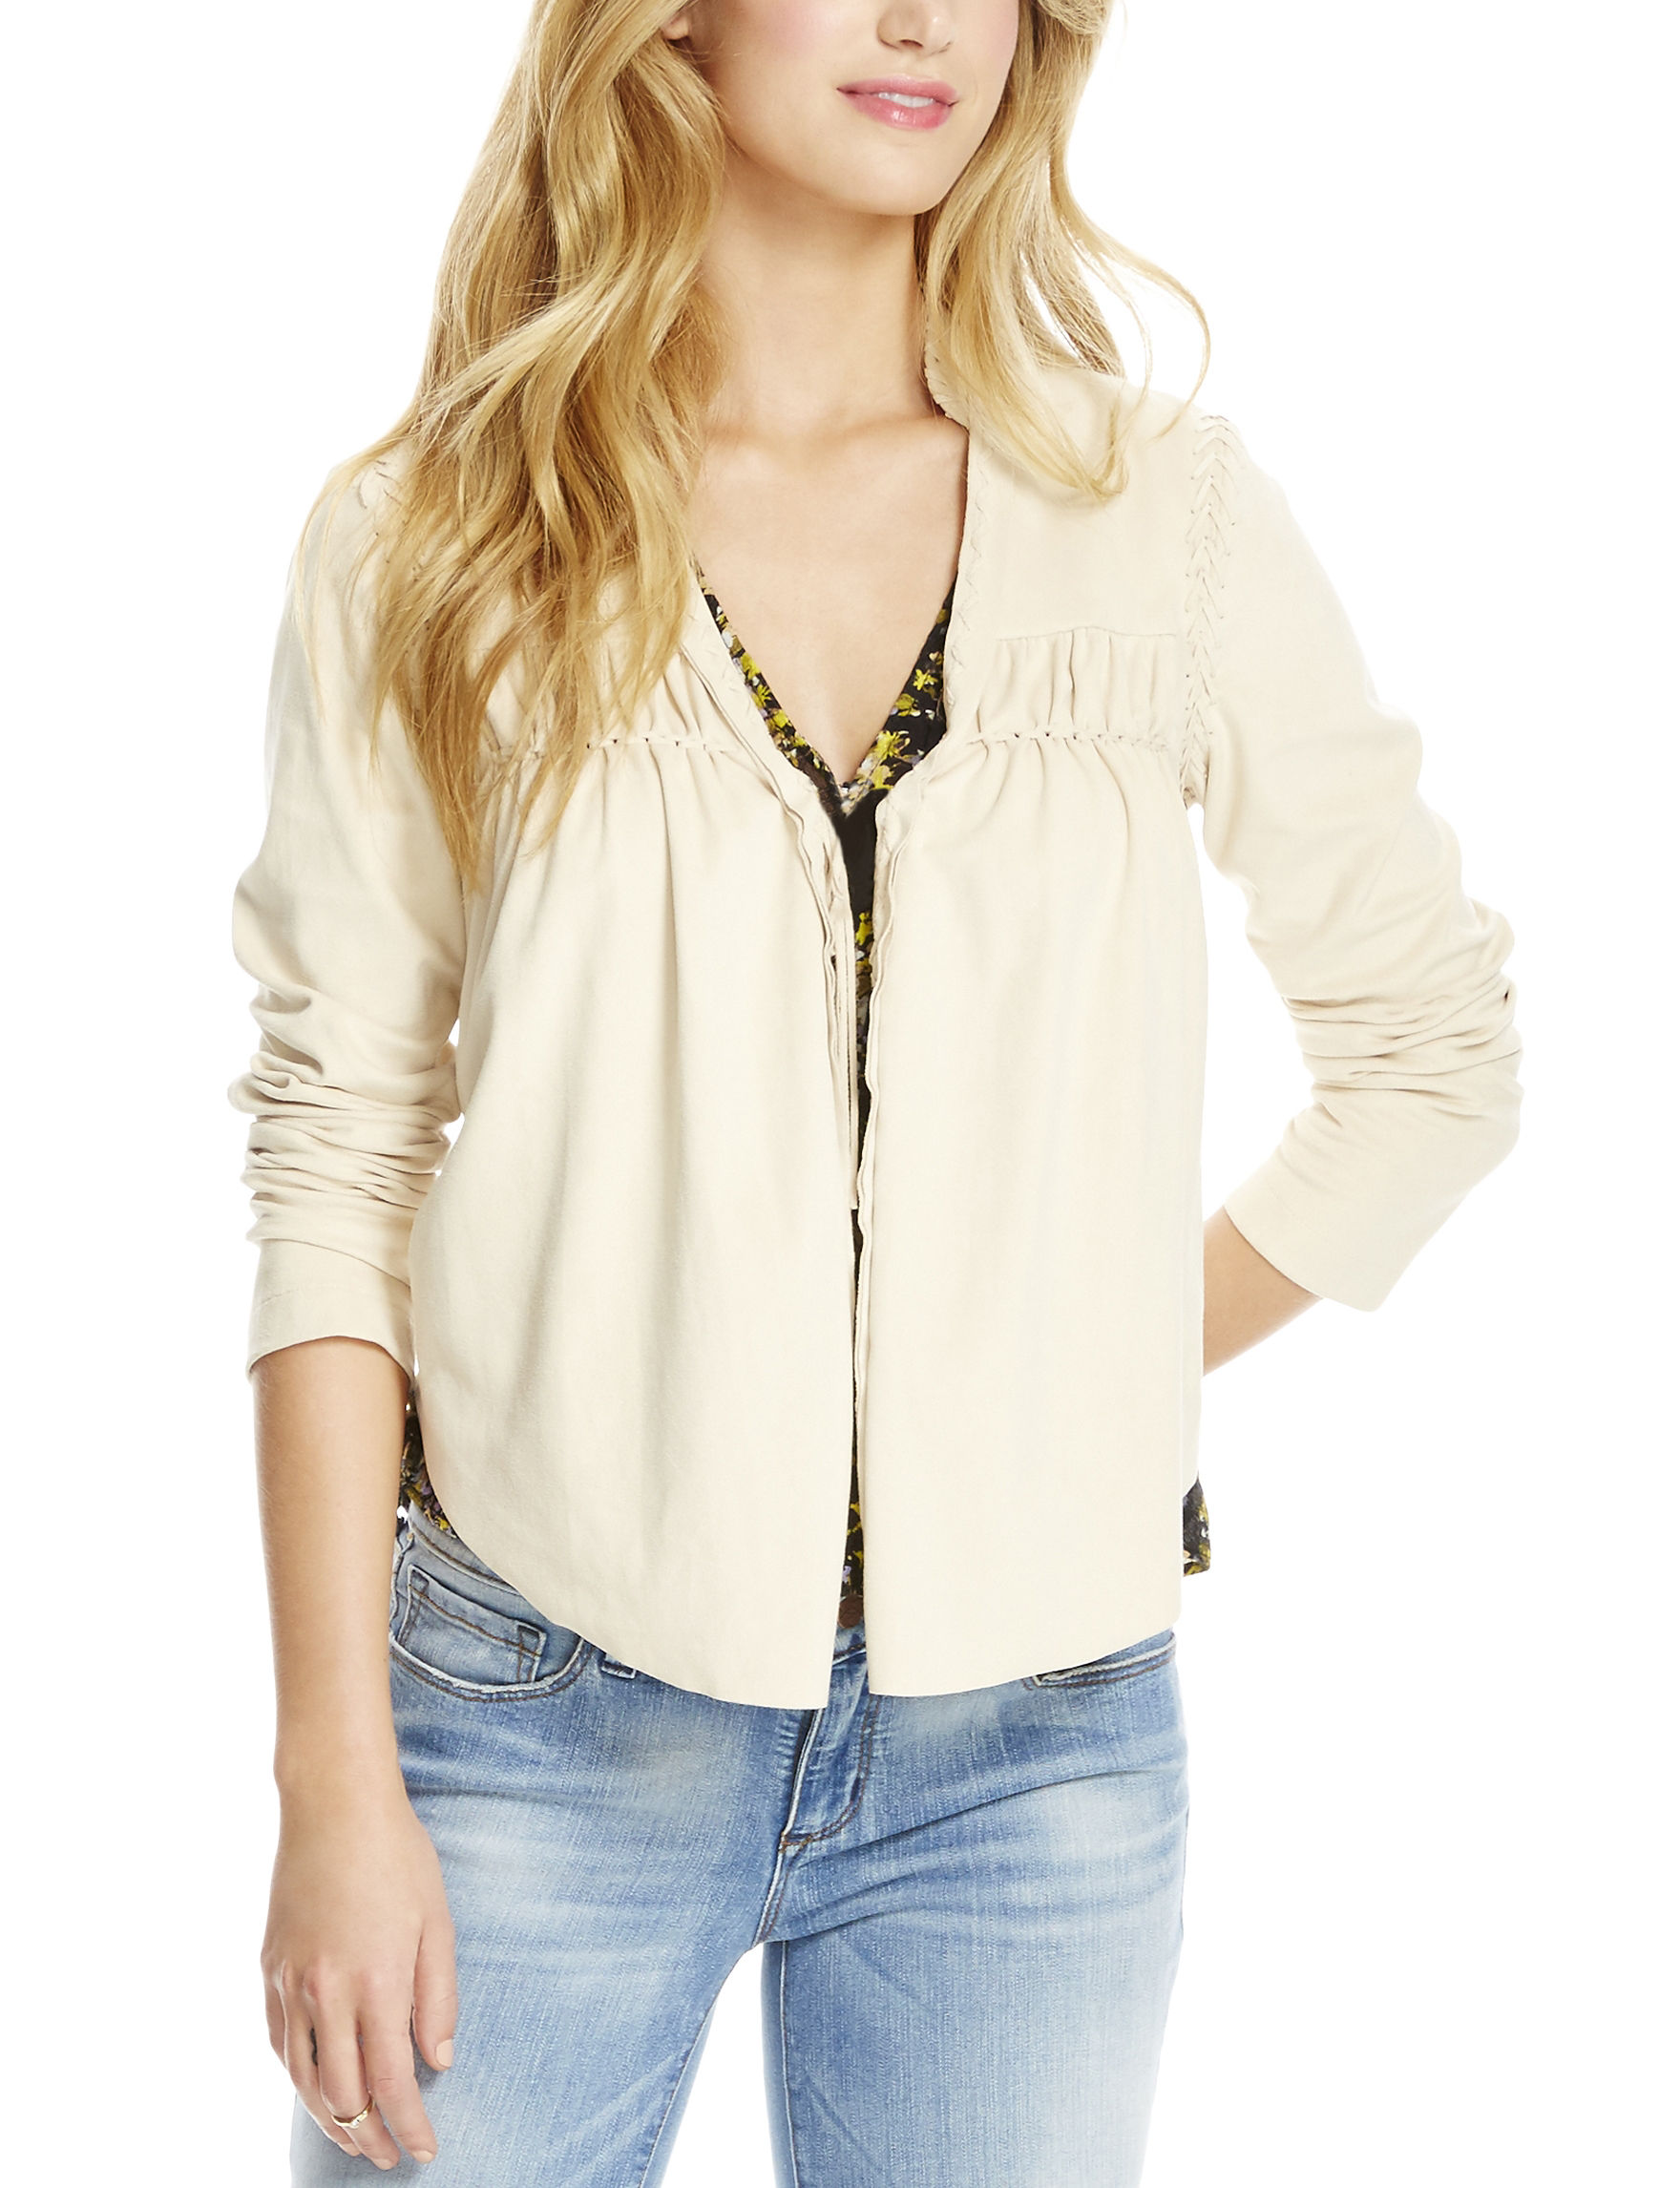 Jessica Simpson Light Beige Lightweight Jackets & Blazers